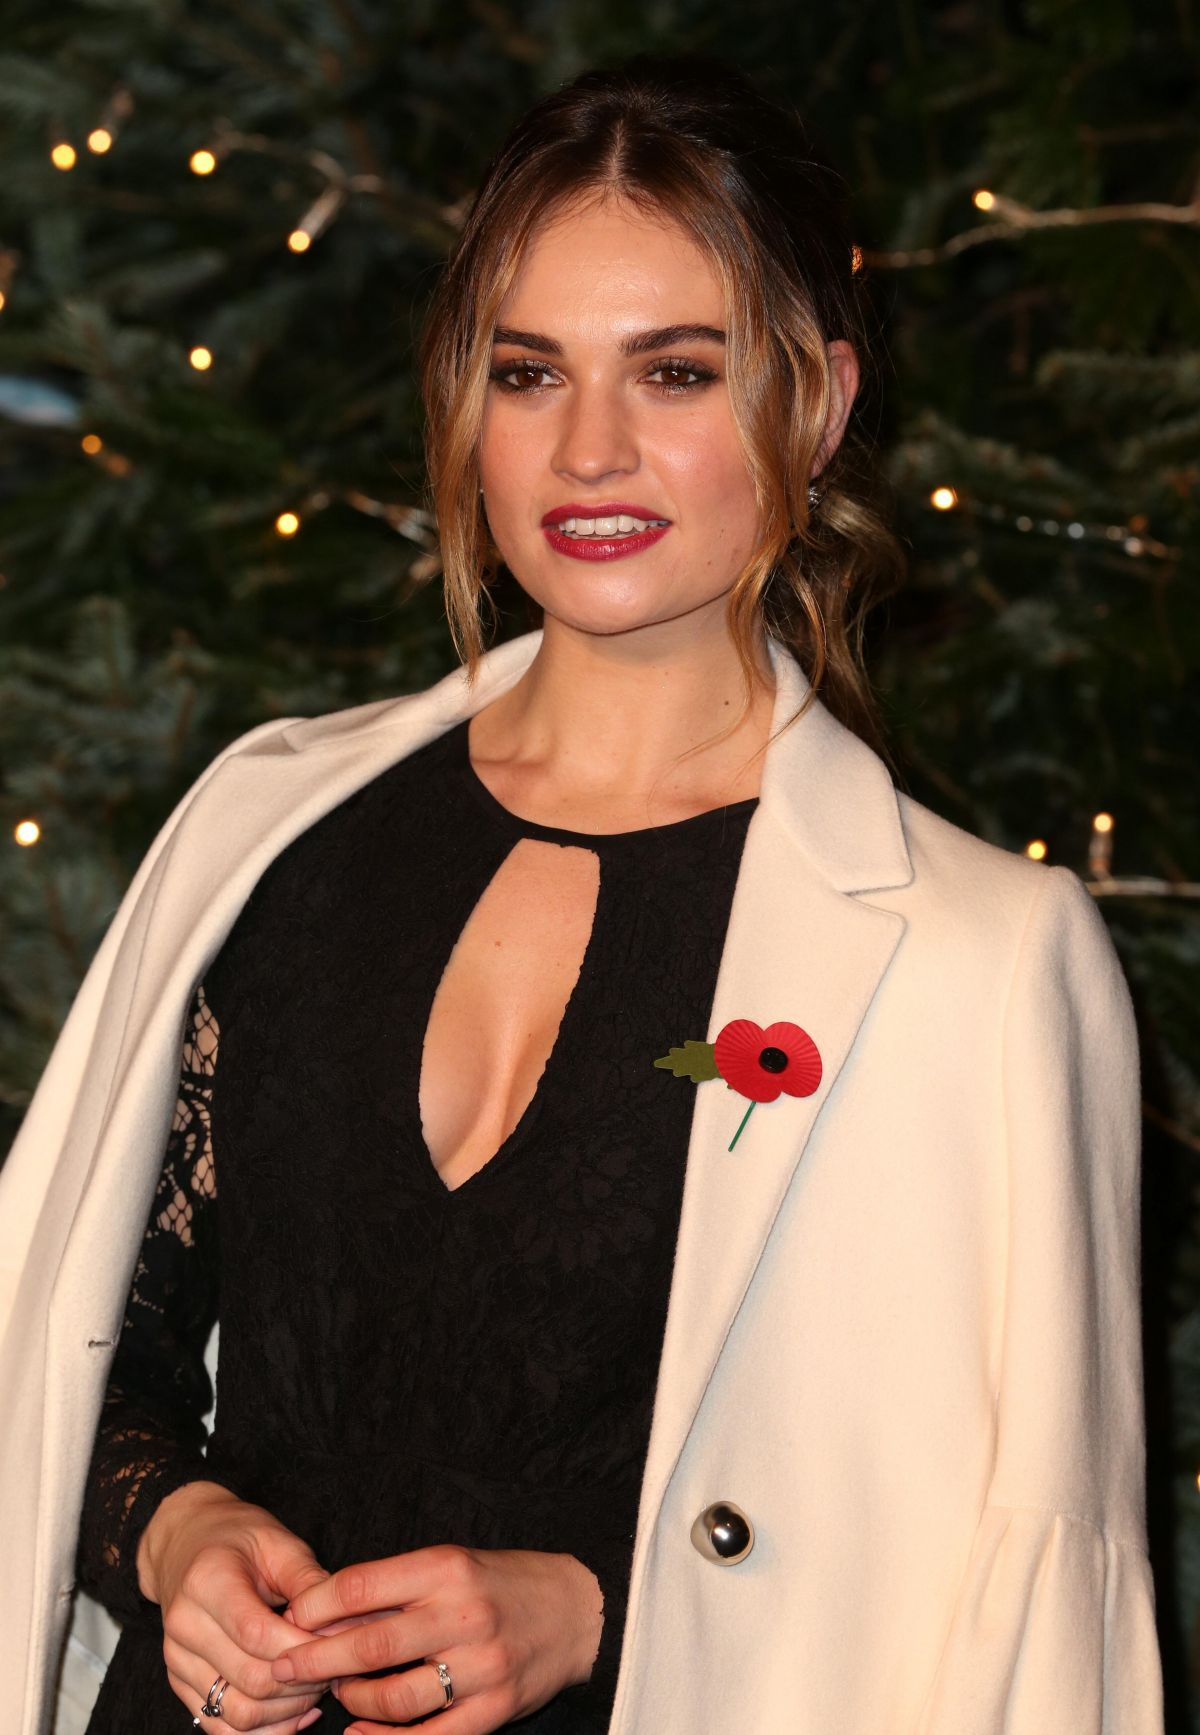 LILY JAMES at Harrods in Collaboration with Burberry for a Very British Fairytale Event in London 11/03/2016